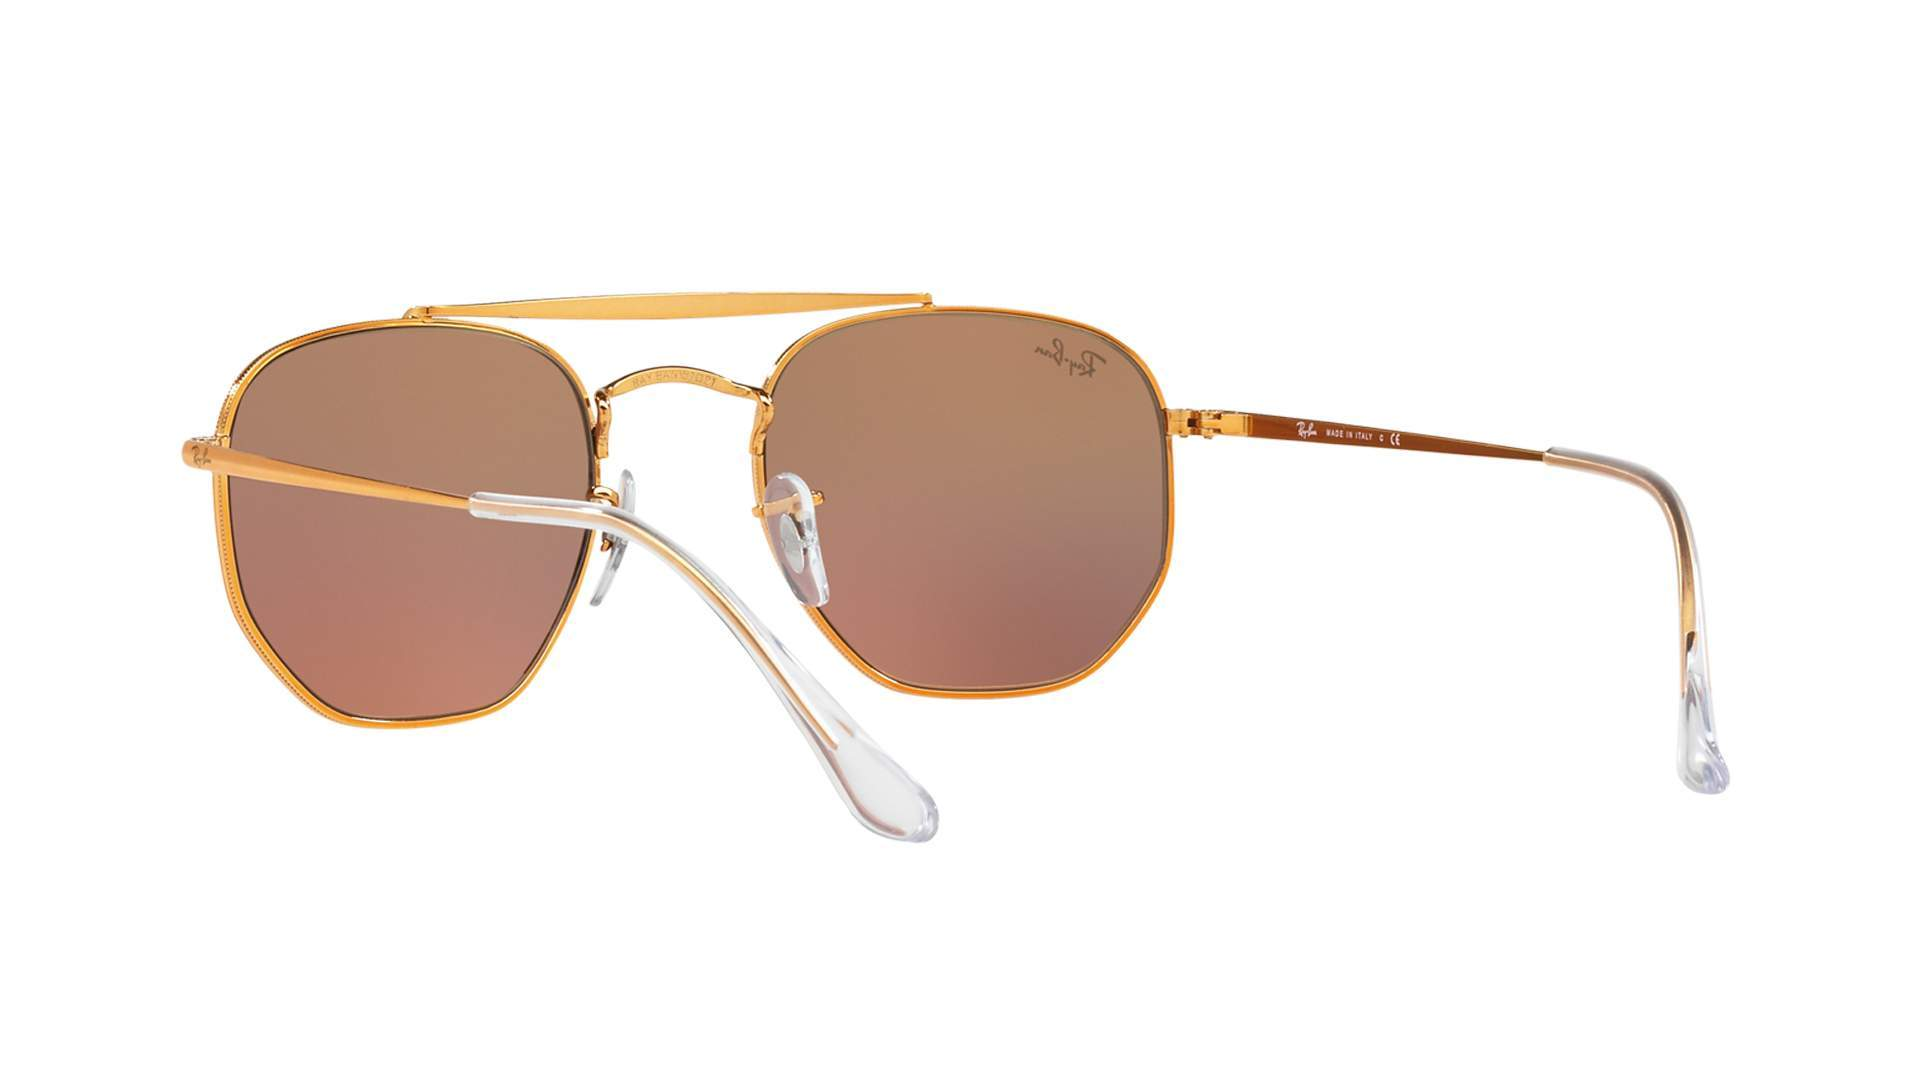 Sunglasses Ray-Ban Marshal Gold RB3648 9001 I1 54-21 Large Gradient Mirror a04a41ec62